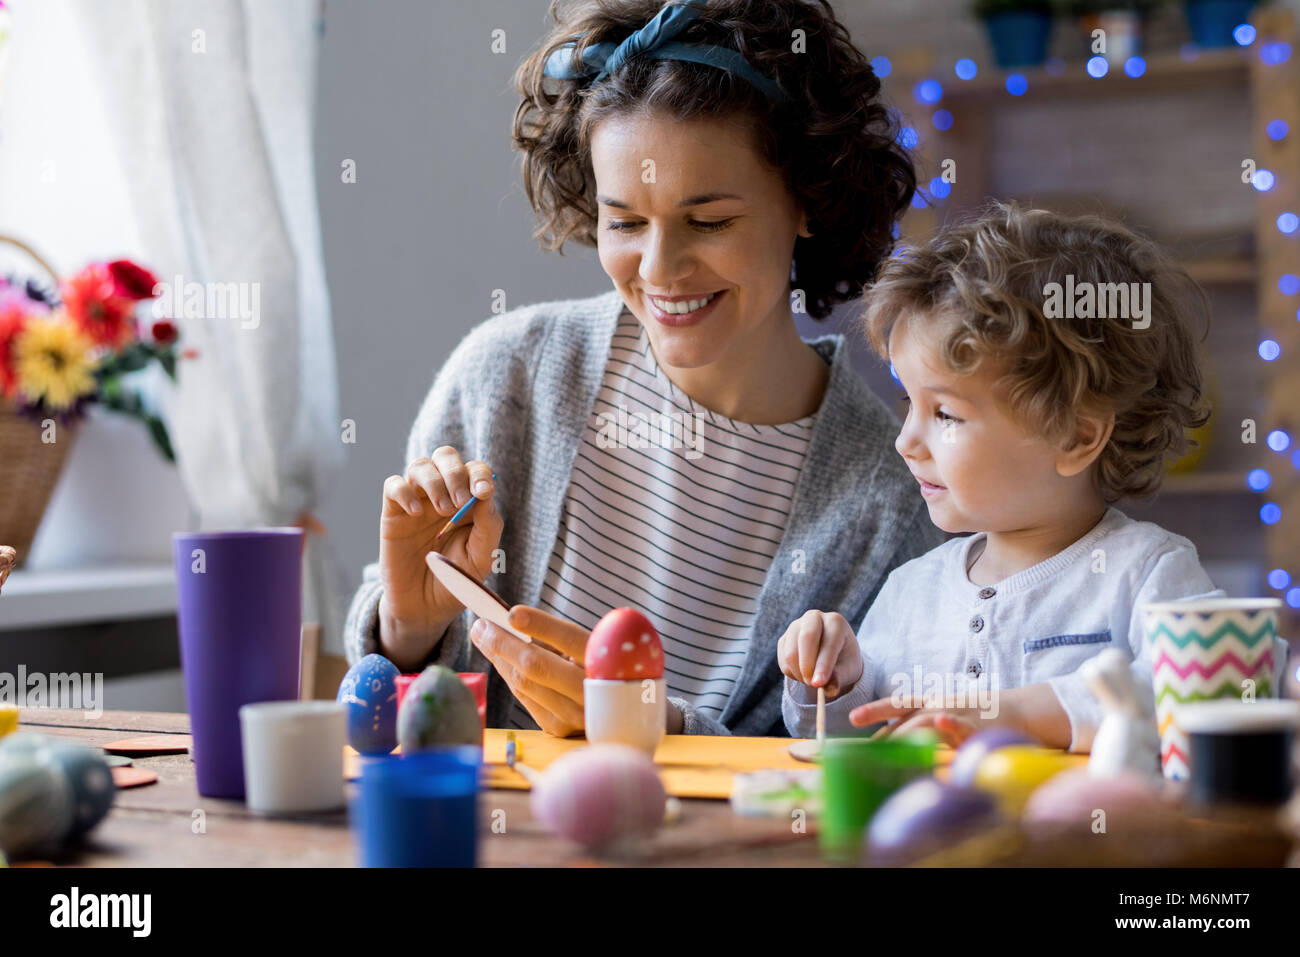 Mother and Child Crafting for Easter - Stock Image